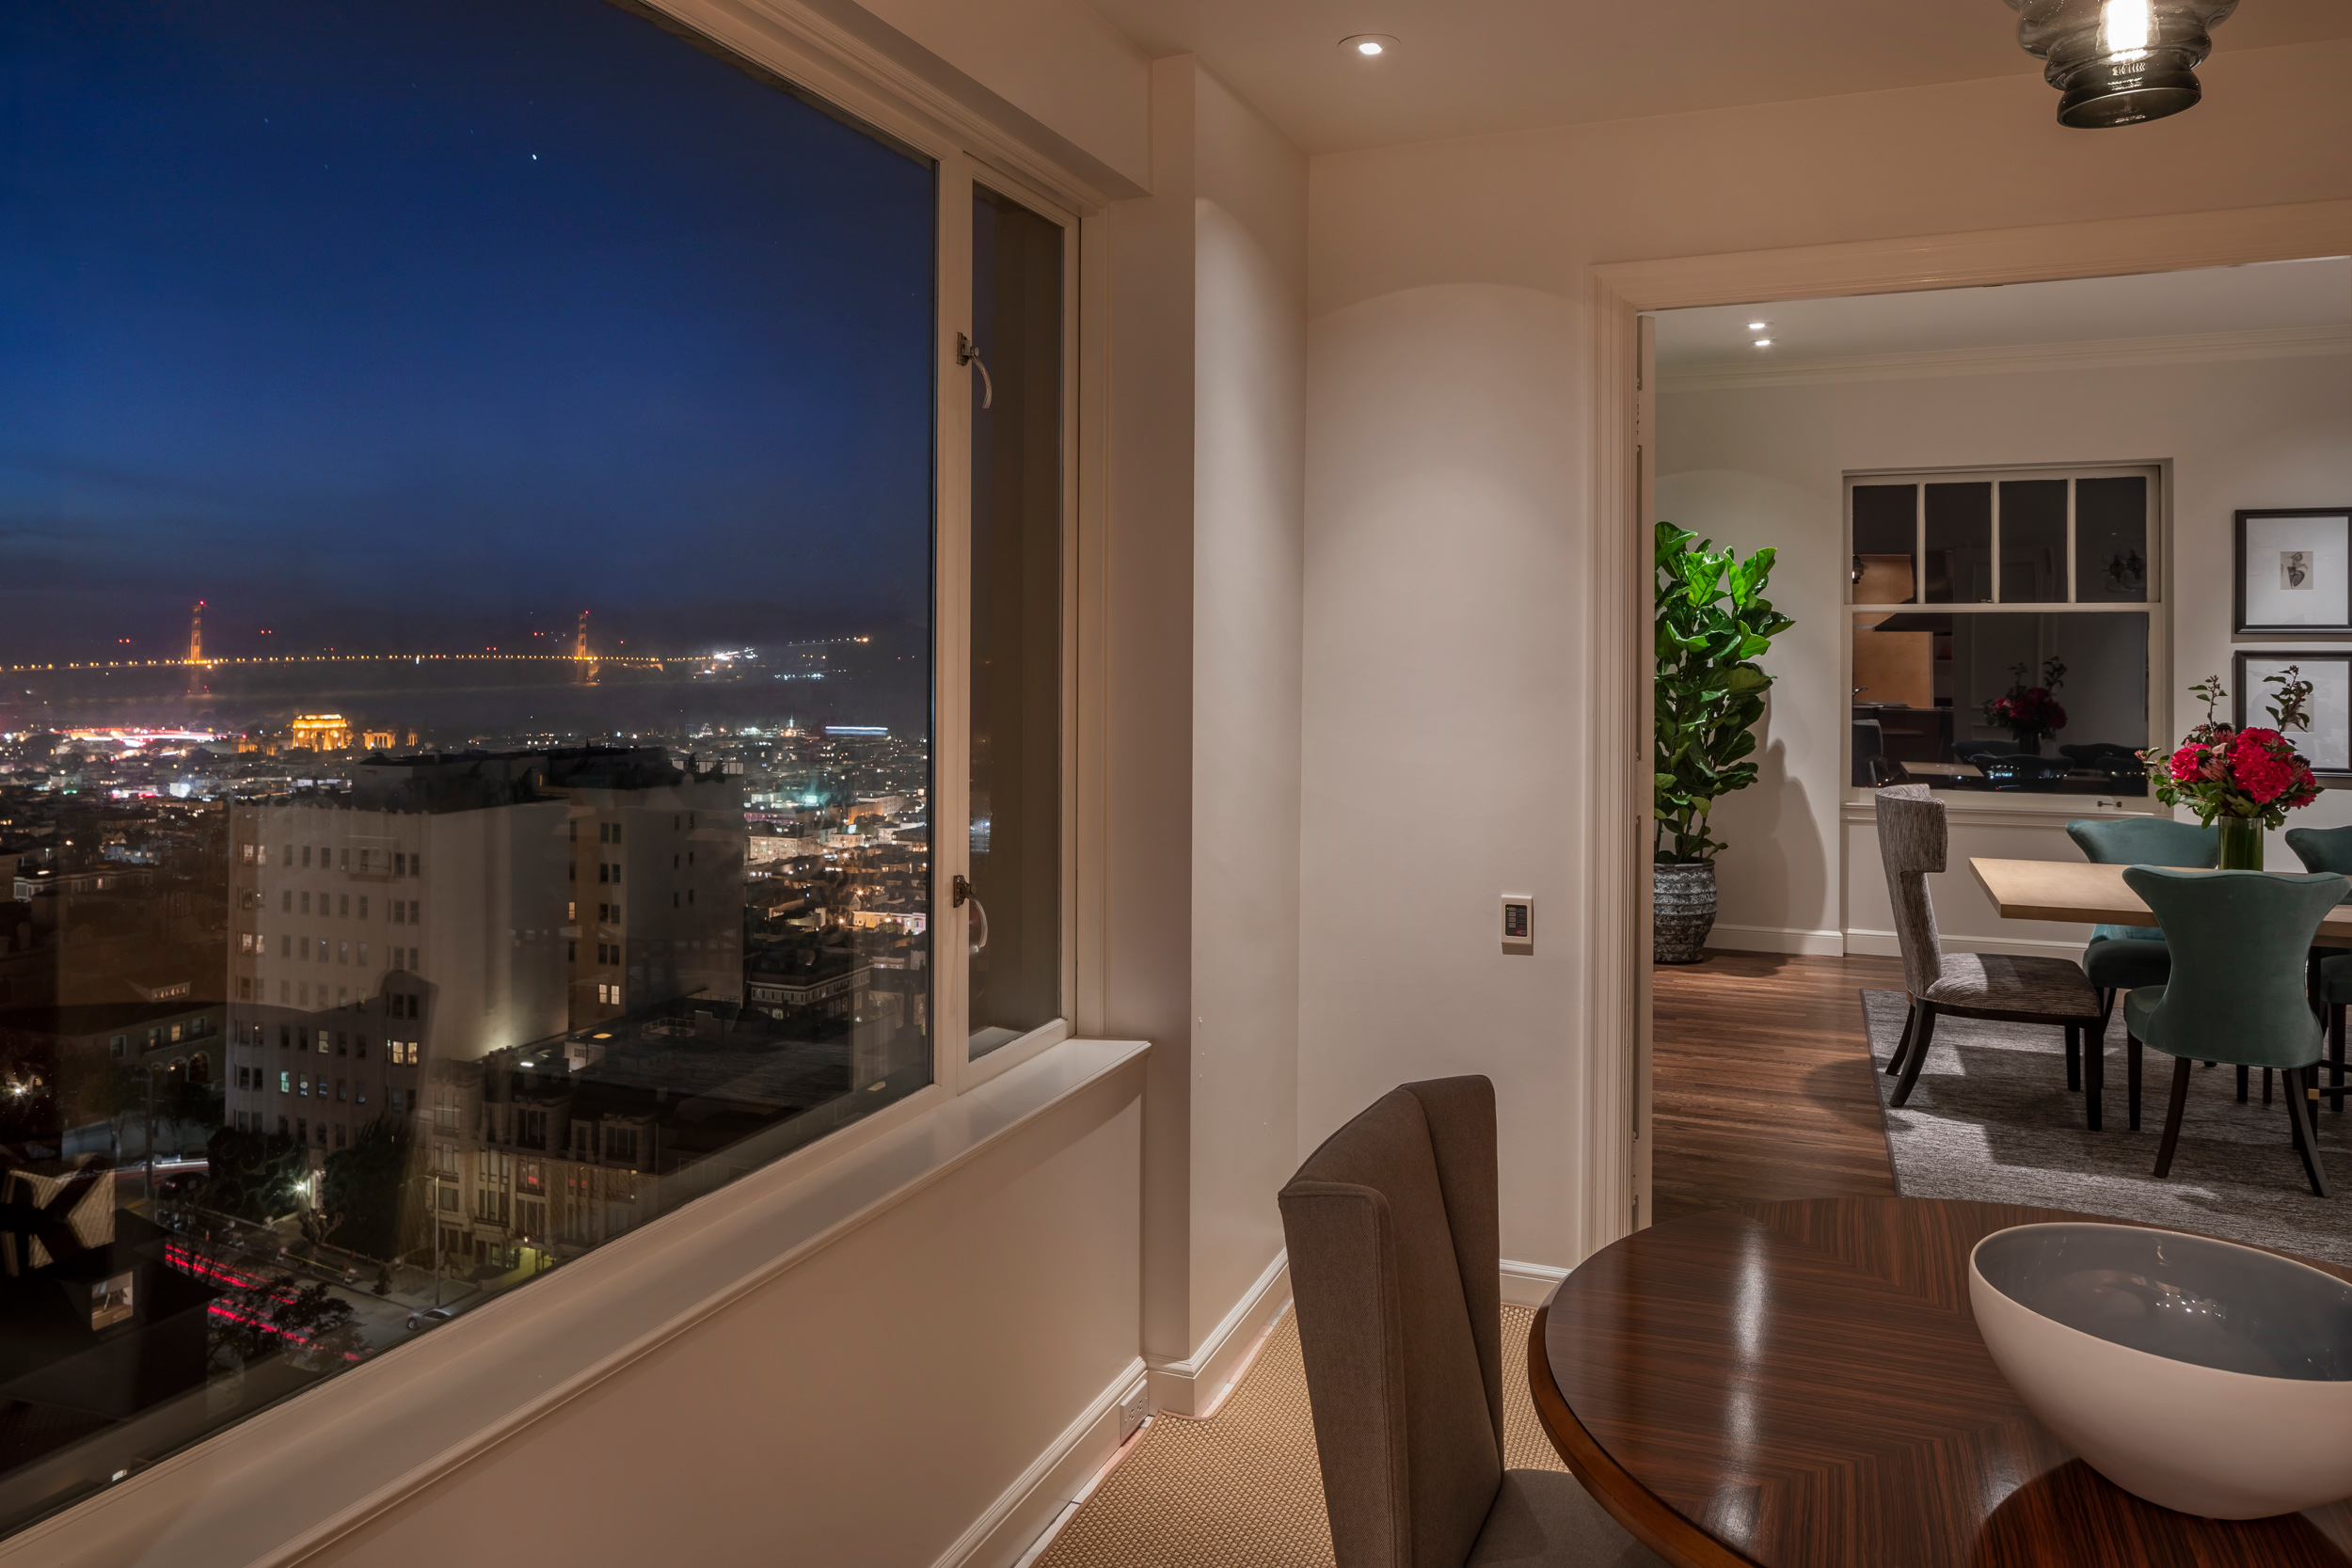 Dining_Nook_View_9013.jpg